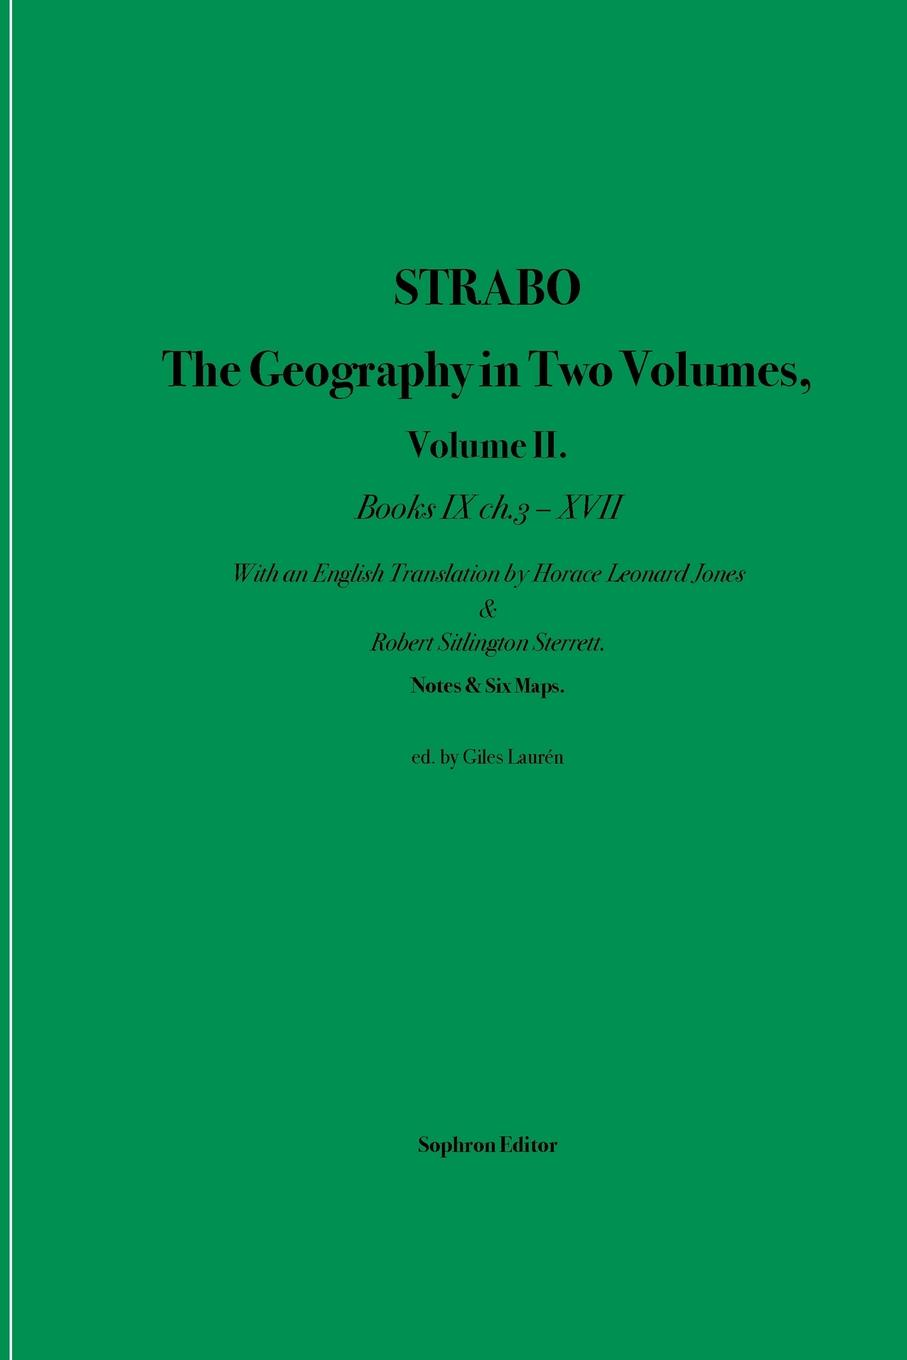 Strabo, Horace Leonard Jones Strabo The Geography in Two Volumes. Volume II. Books IX ch. 3 - XVII flight volume two